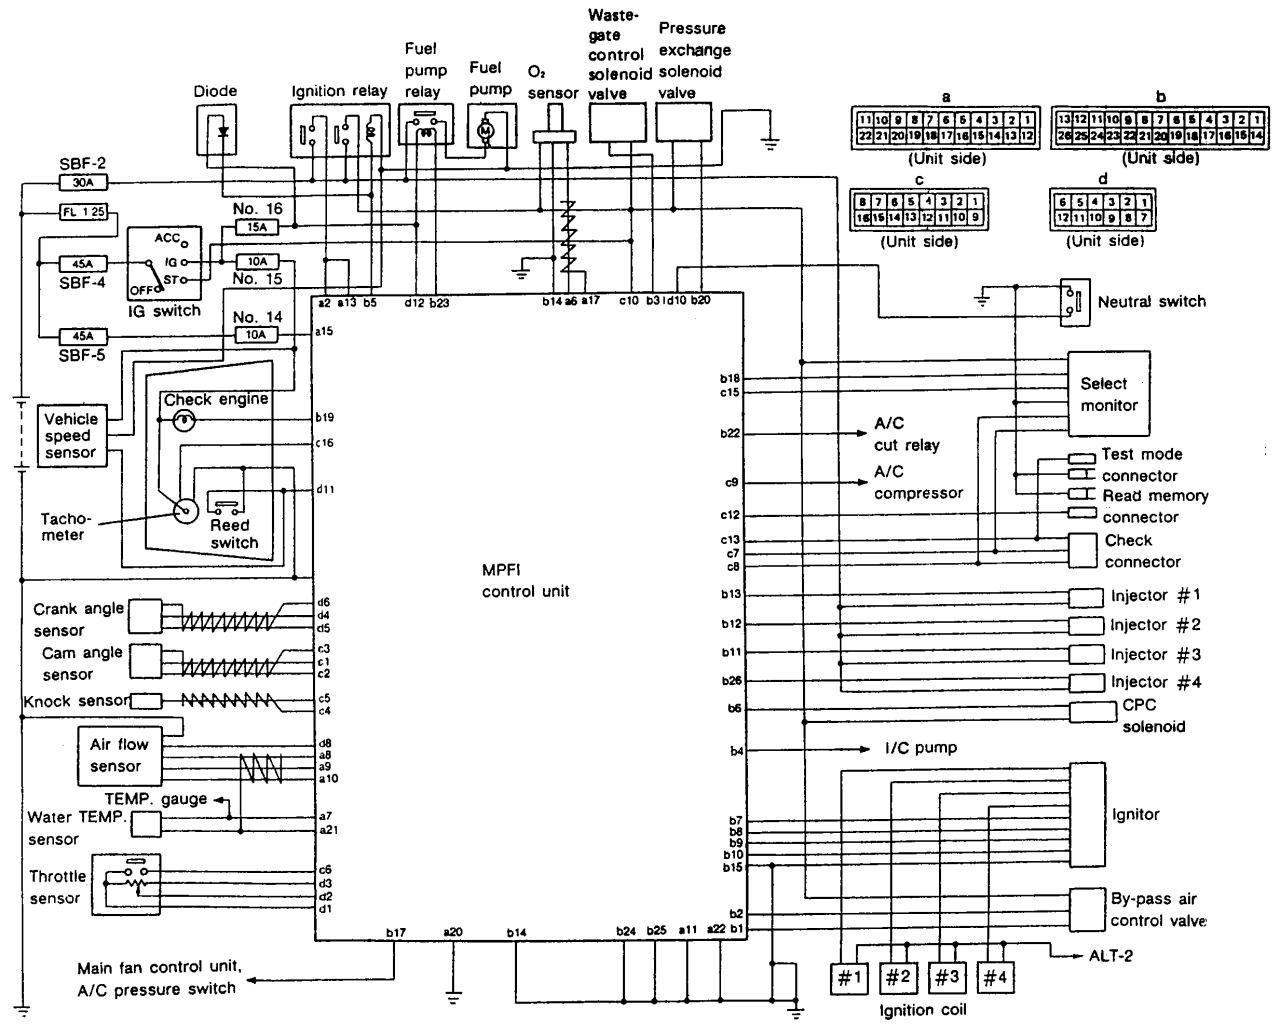 1992 Subaru Legacy Heater Wiring Schematic - Wiring Diagram For ...